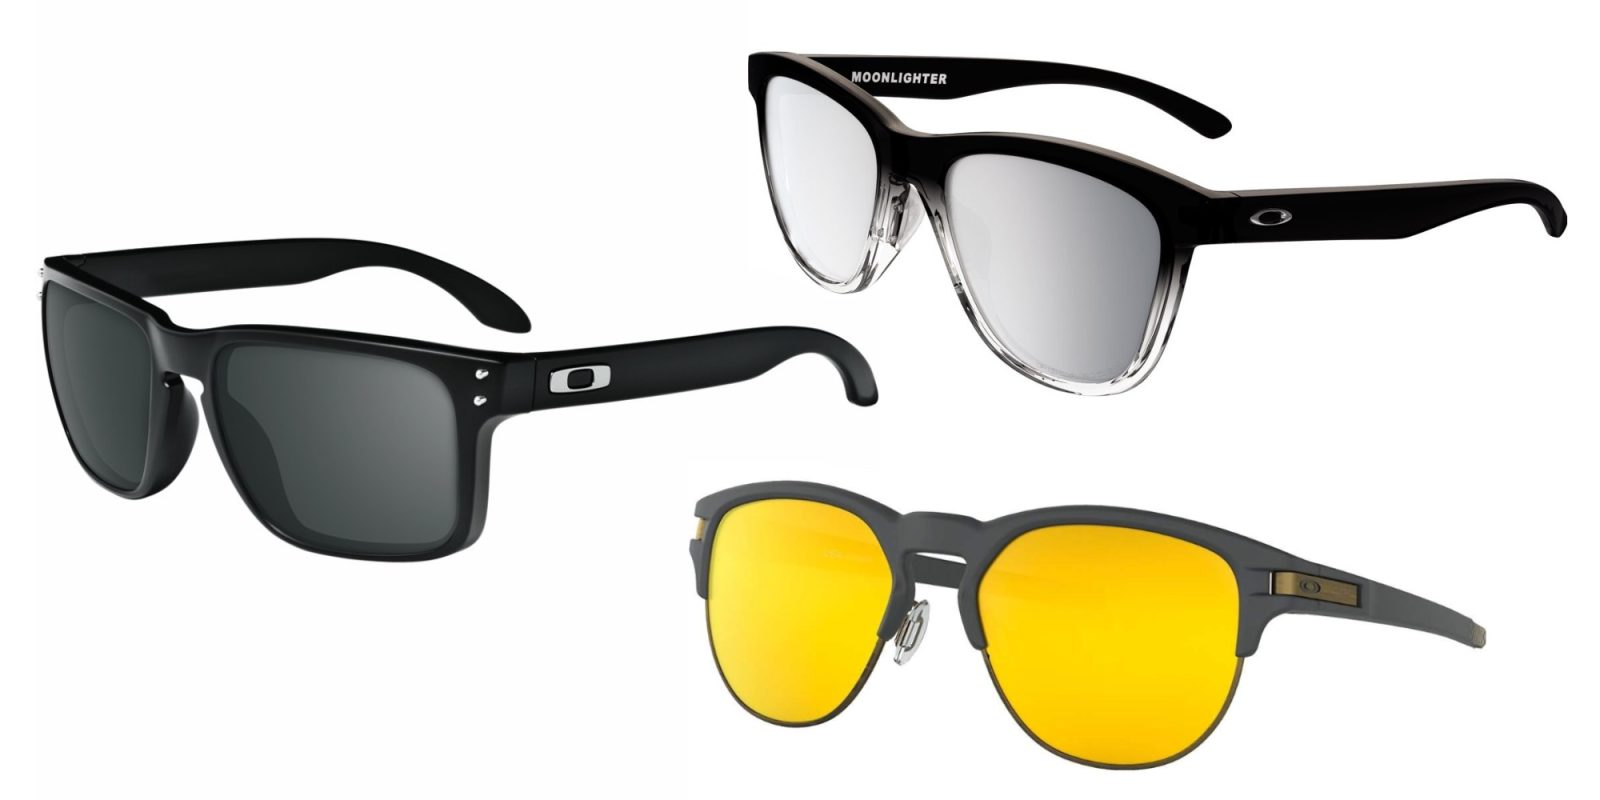 Score up to 35% off Oakley sunglasses in today's Amazon Gold Box